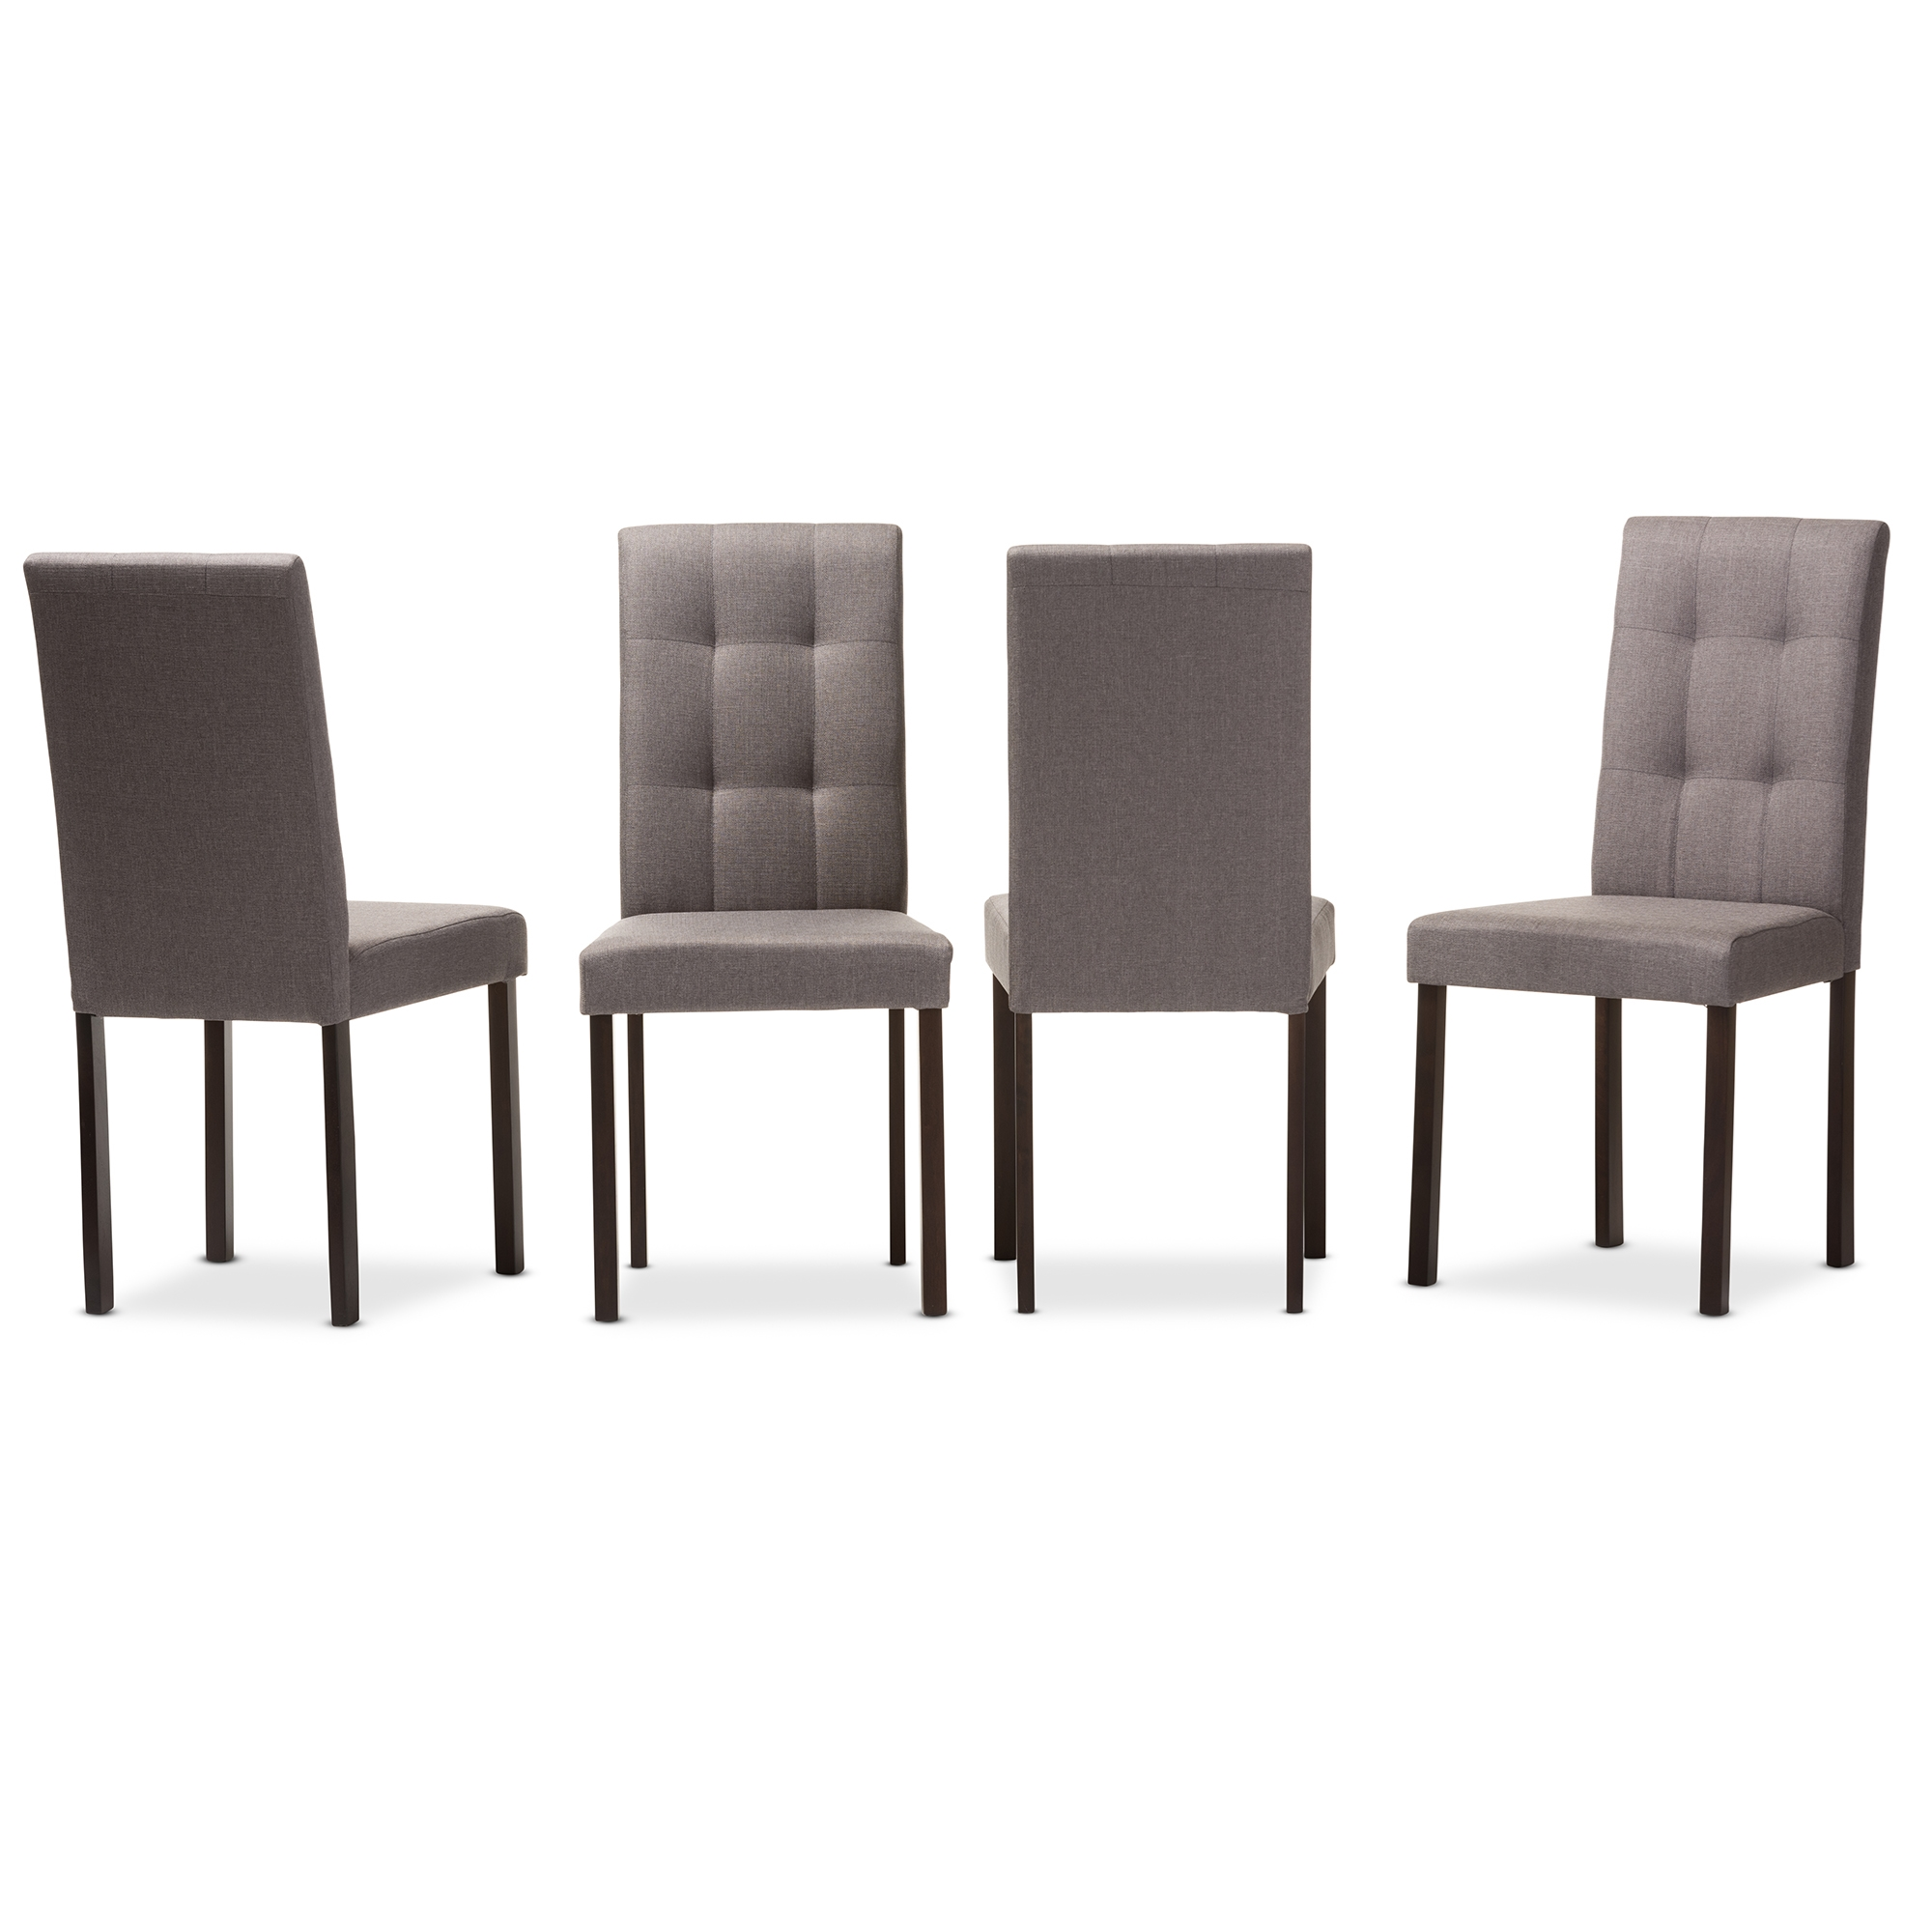 Baxton Studio Andrew Modern And Contemporary Grey Fabric Upholstered  Grid Tufting Dining Chair   IEAndrew ...